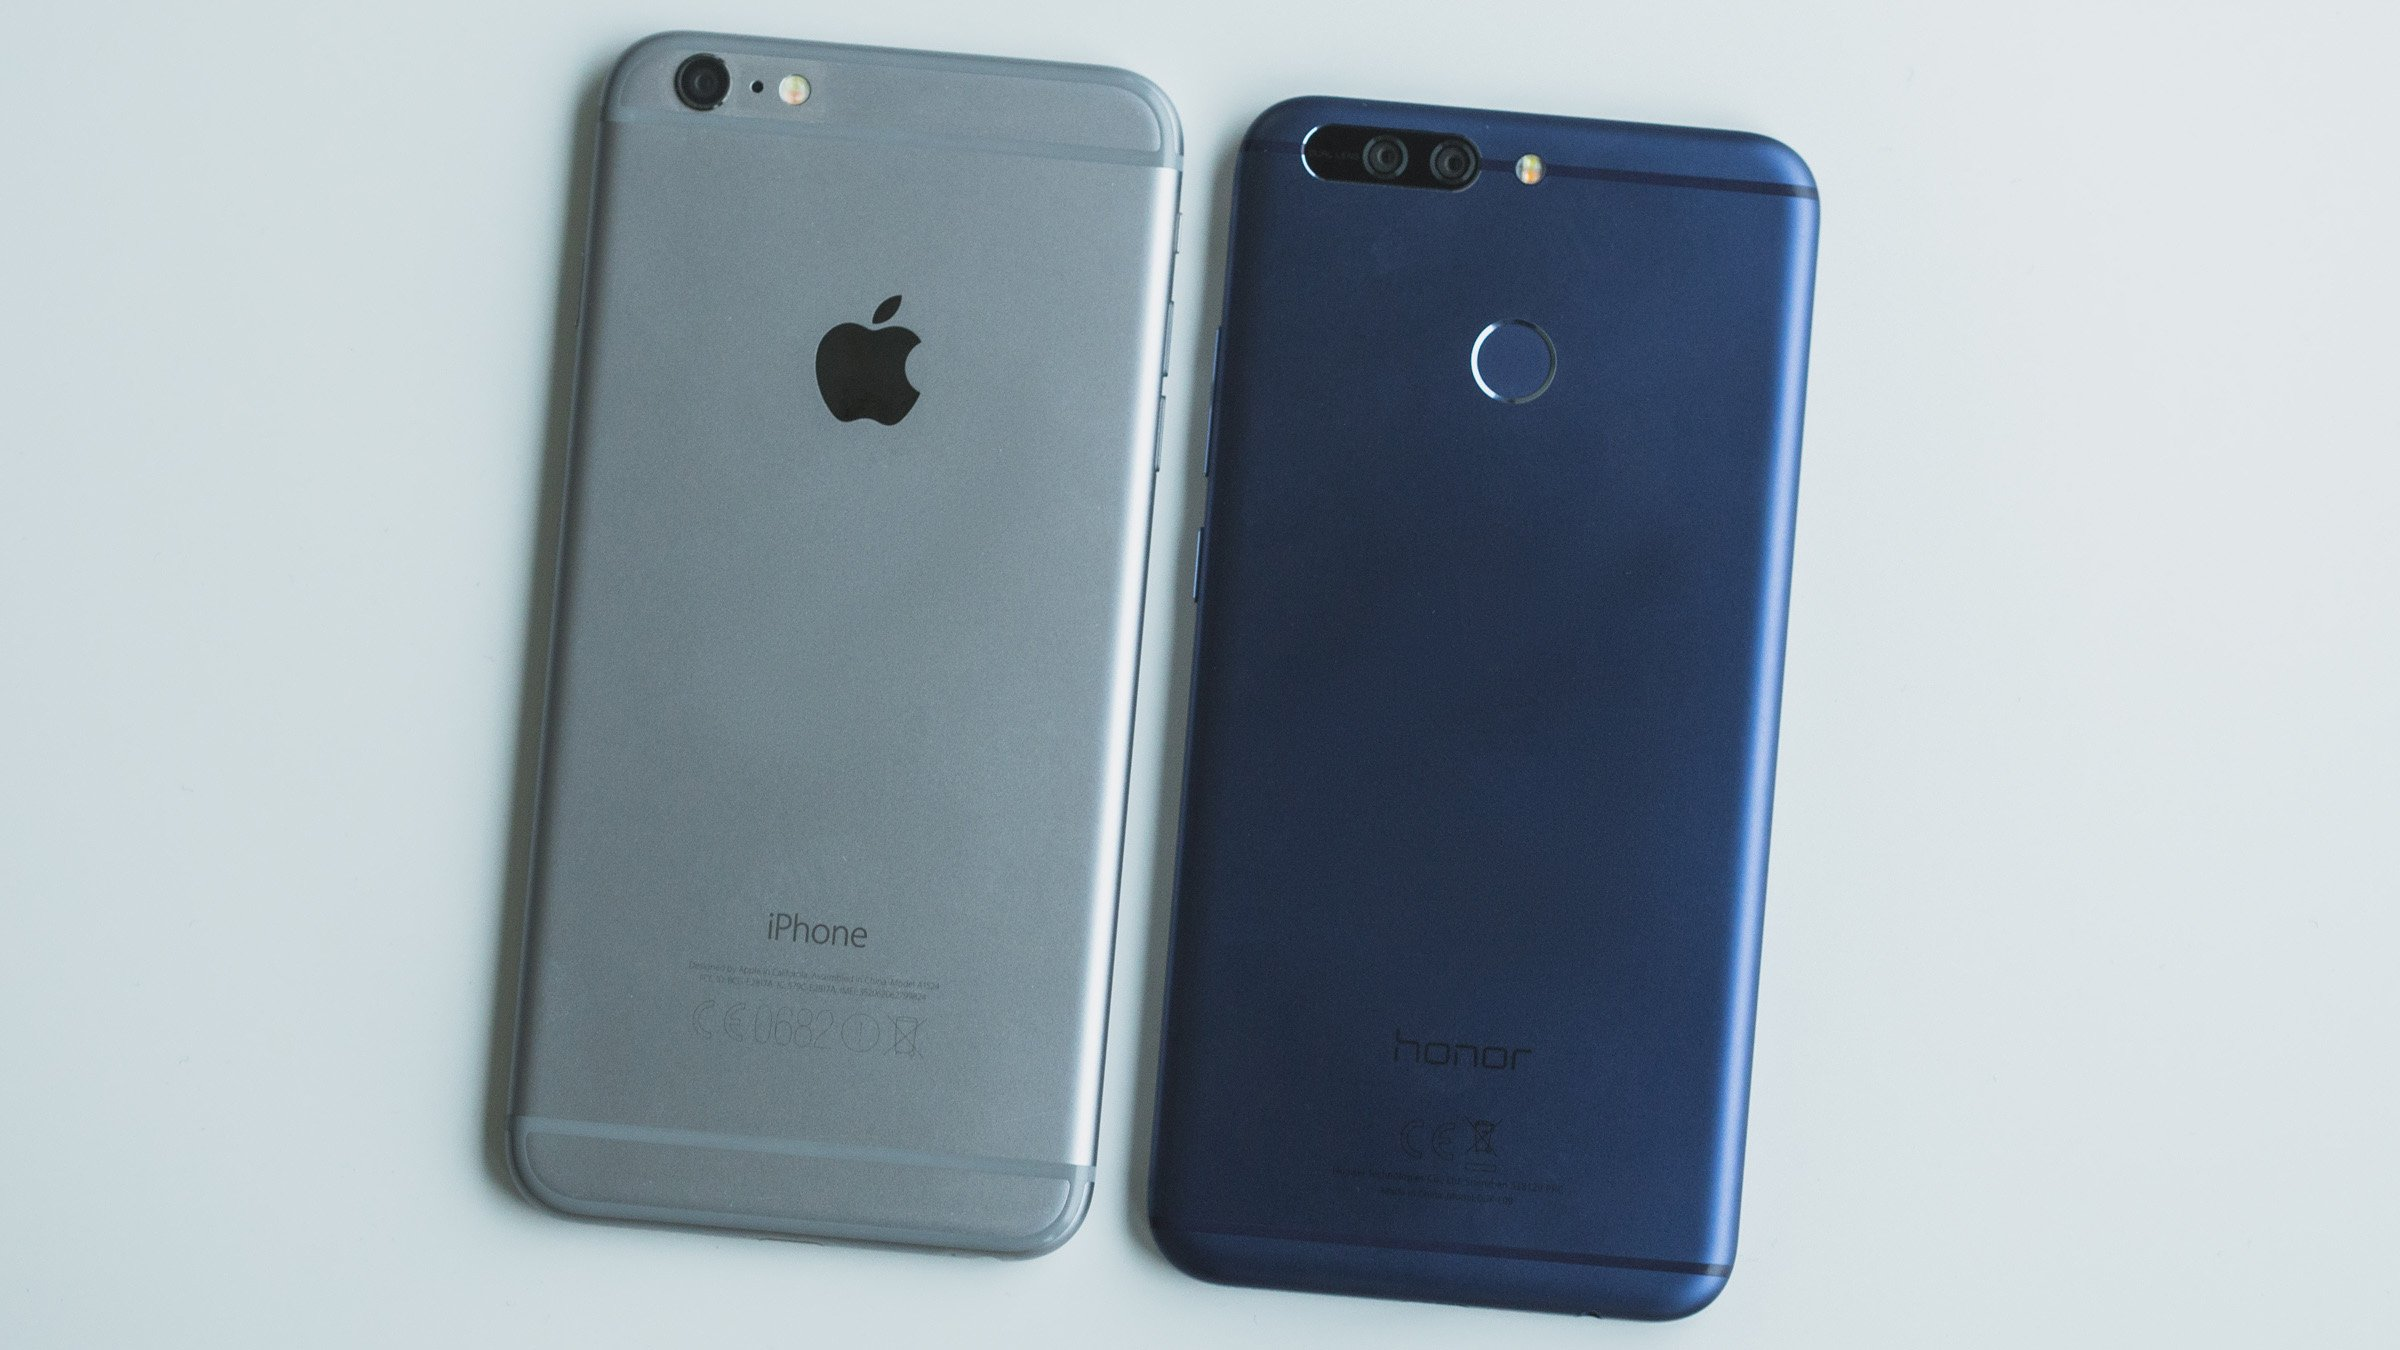 Frontal huawei honor 8 vs iphone 7